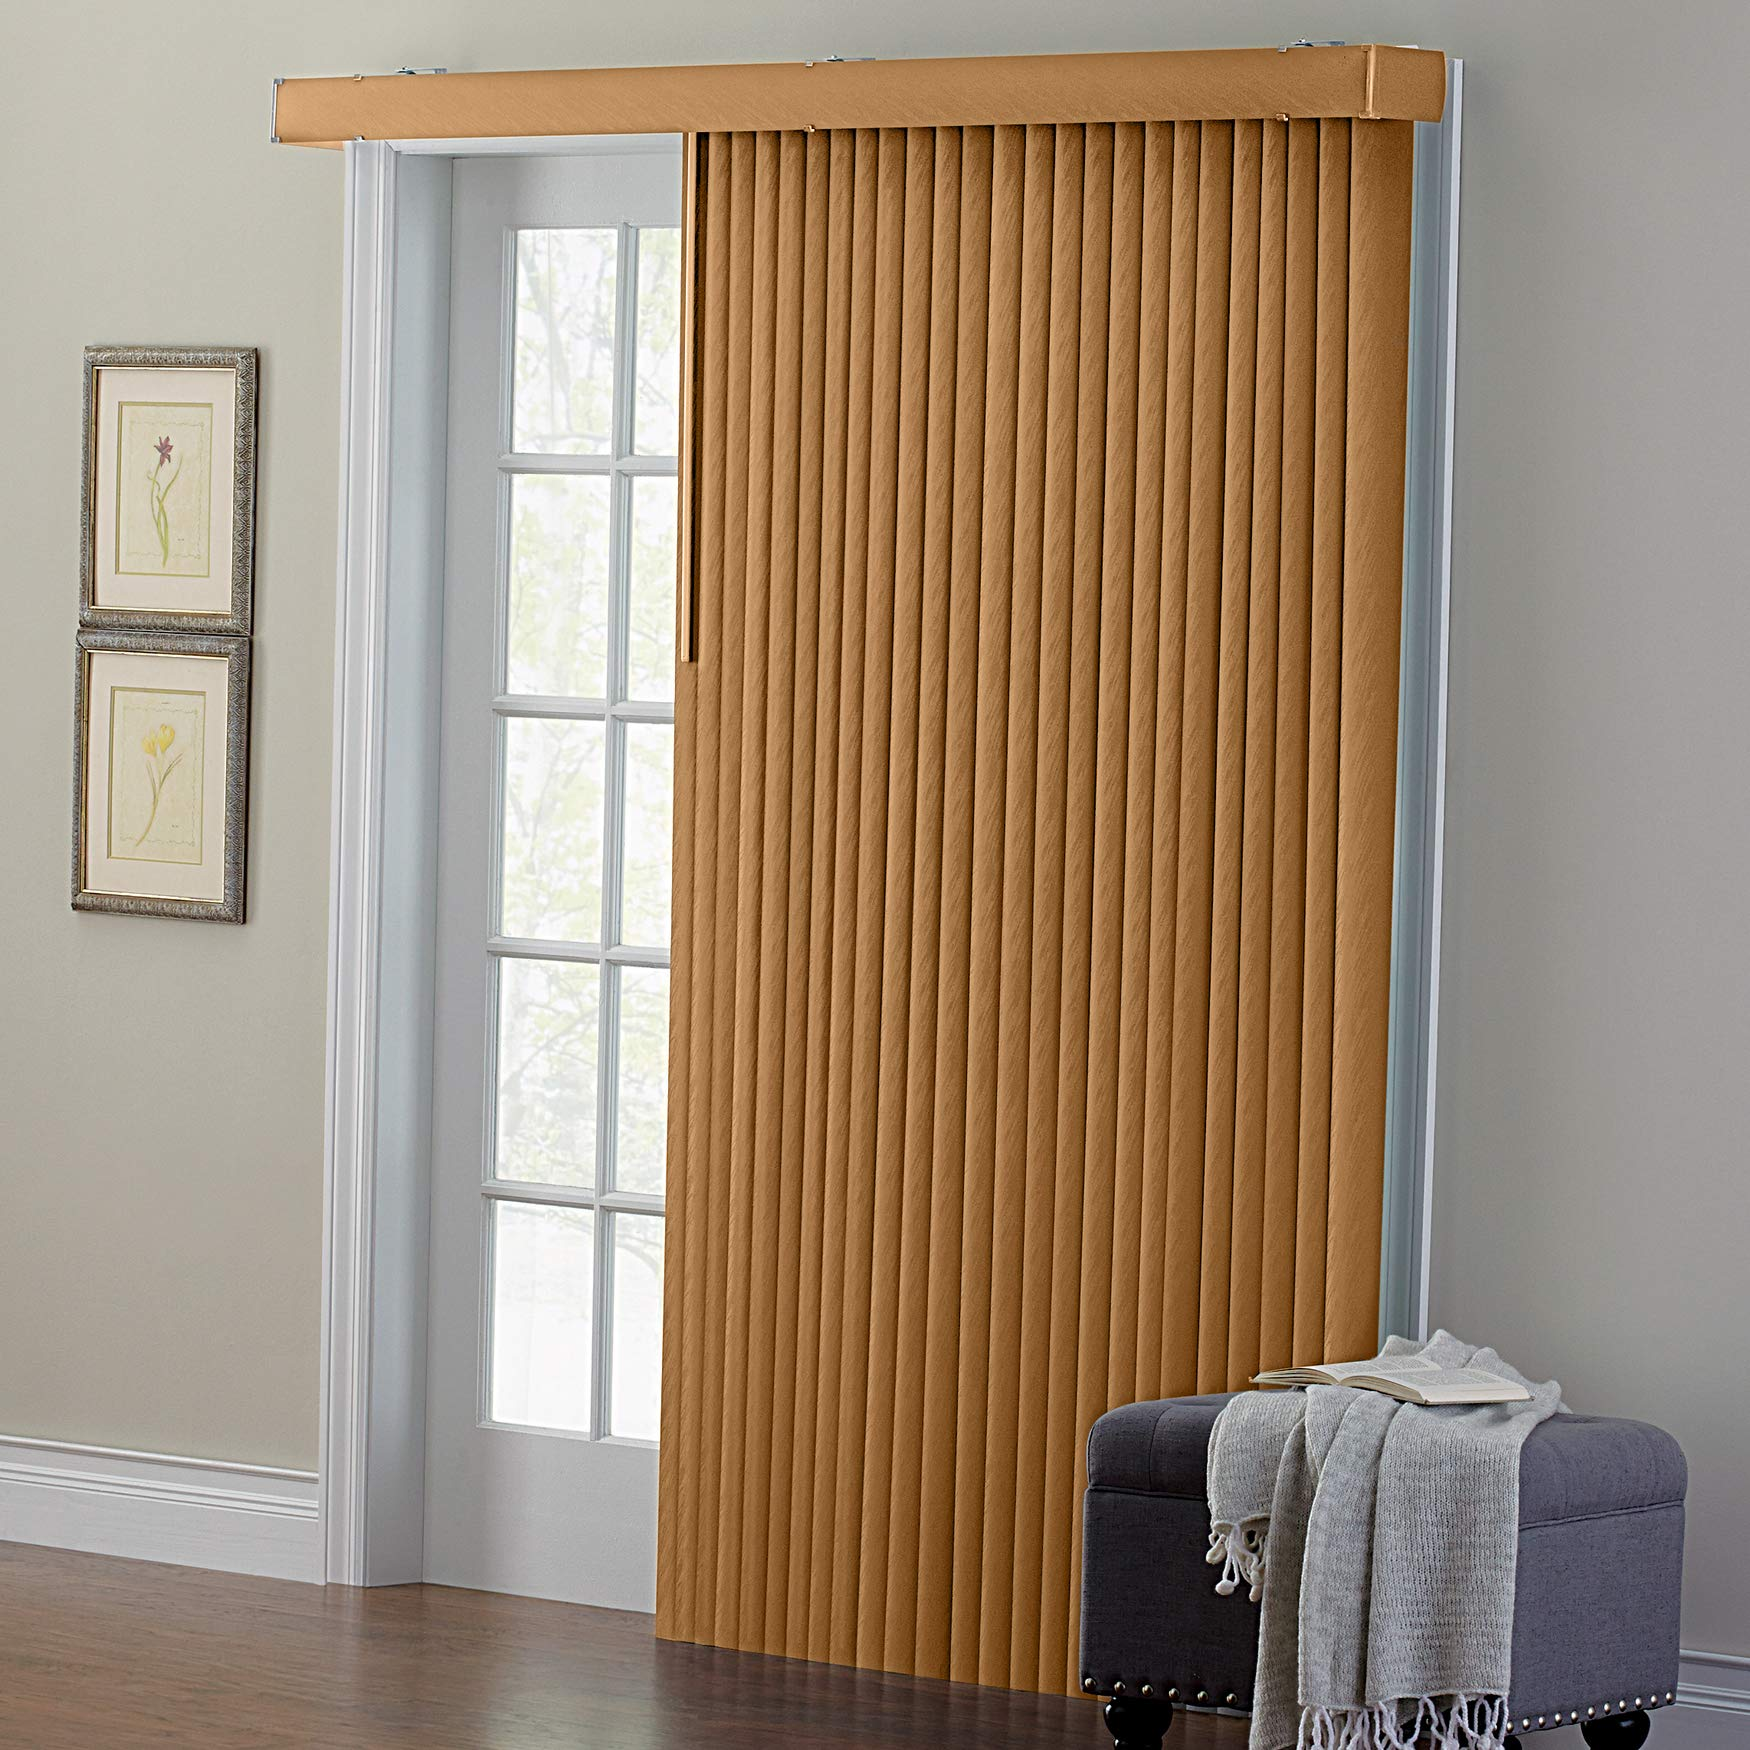 BrylaneHome Embossed Vertical Blinds - Taupe, 42I W 63I L by BrylaneHome